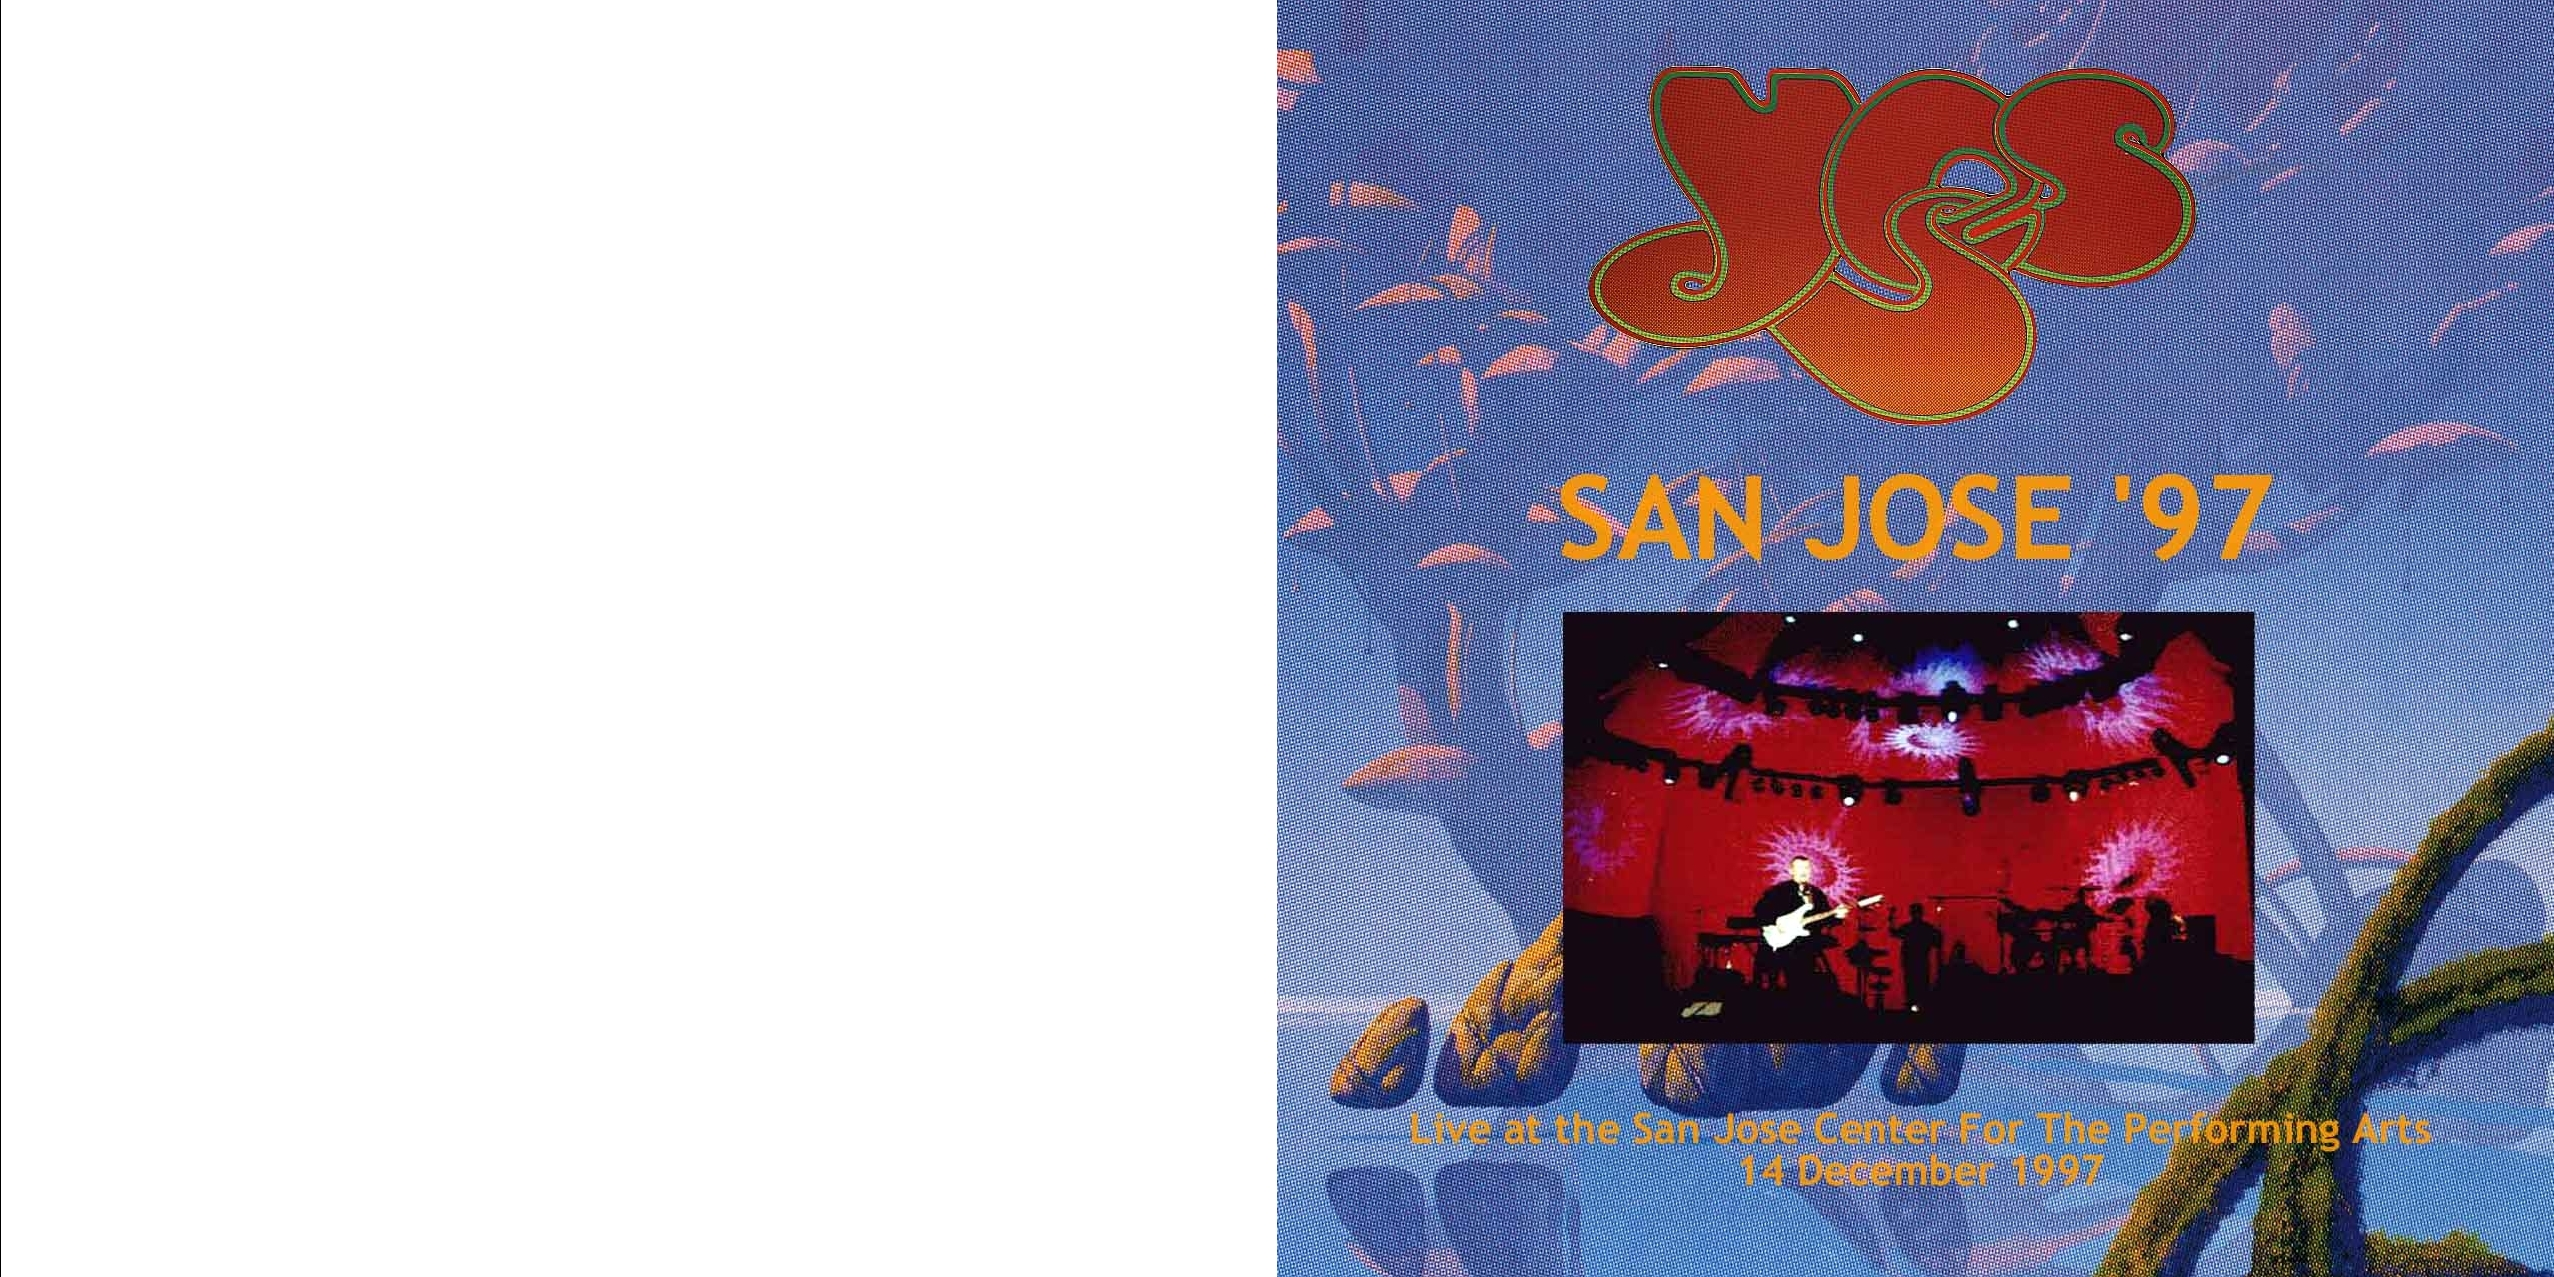 Yes1997-12-14SanJoseCenterForThePerformingArtsCA (1).jpg